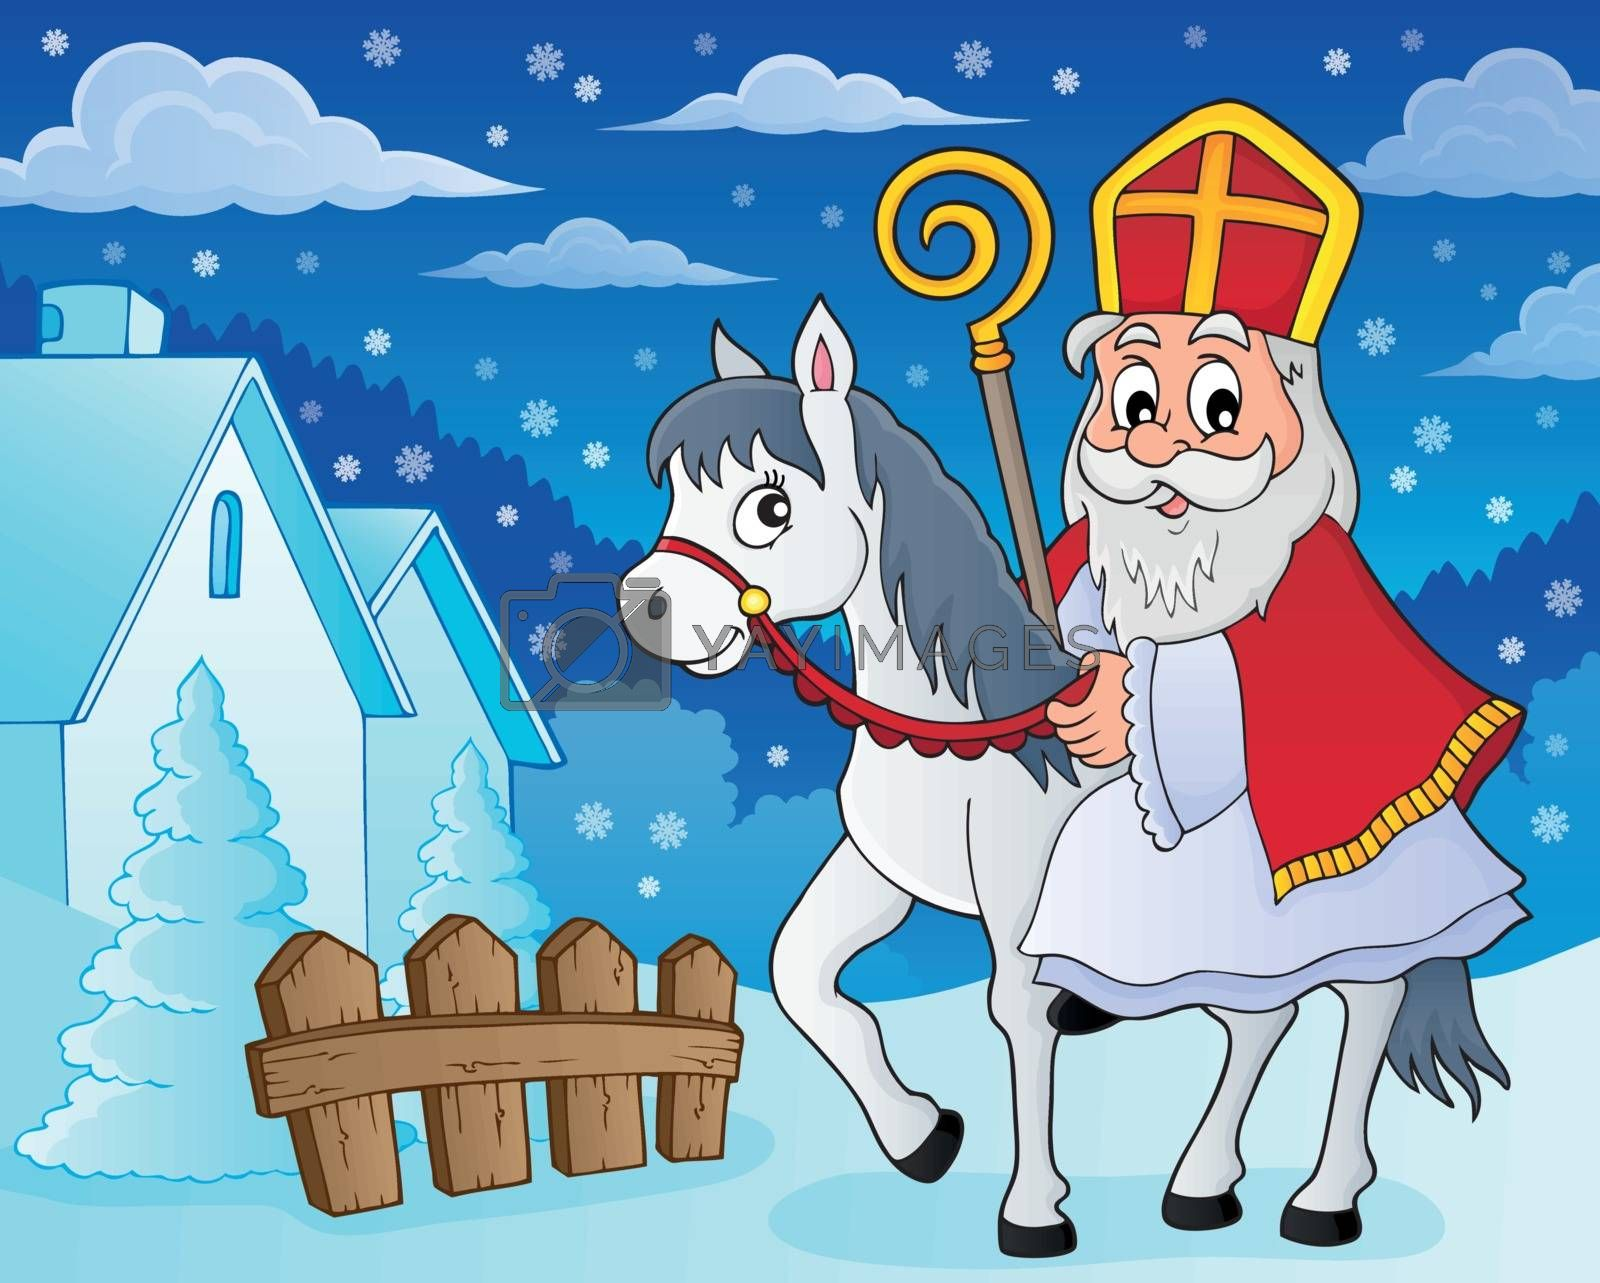 Sinterklaas on horse theme image 5 by clairev